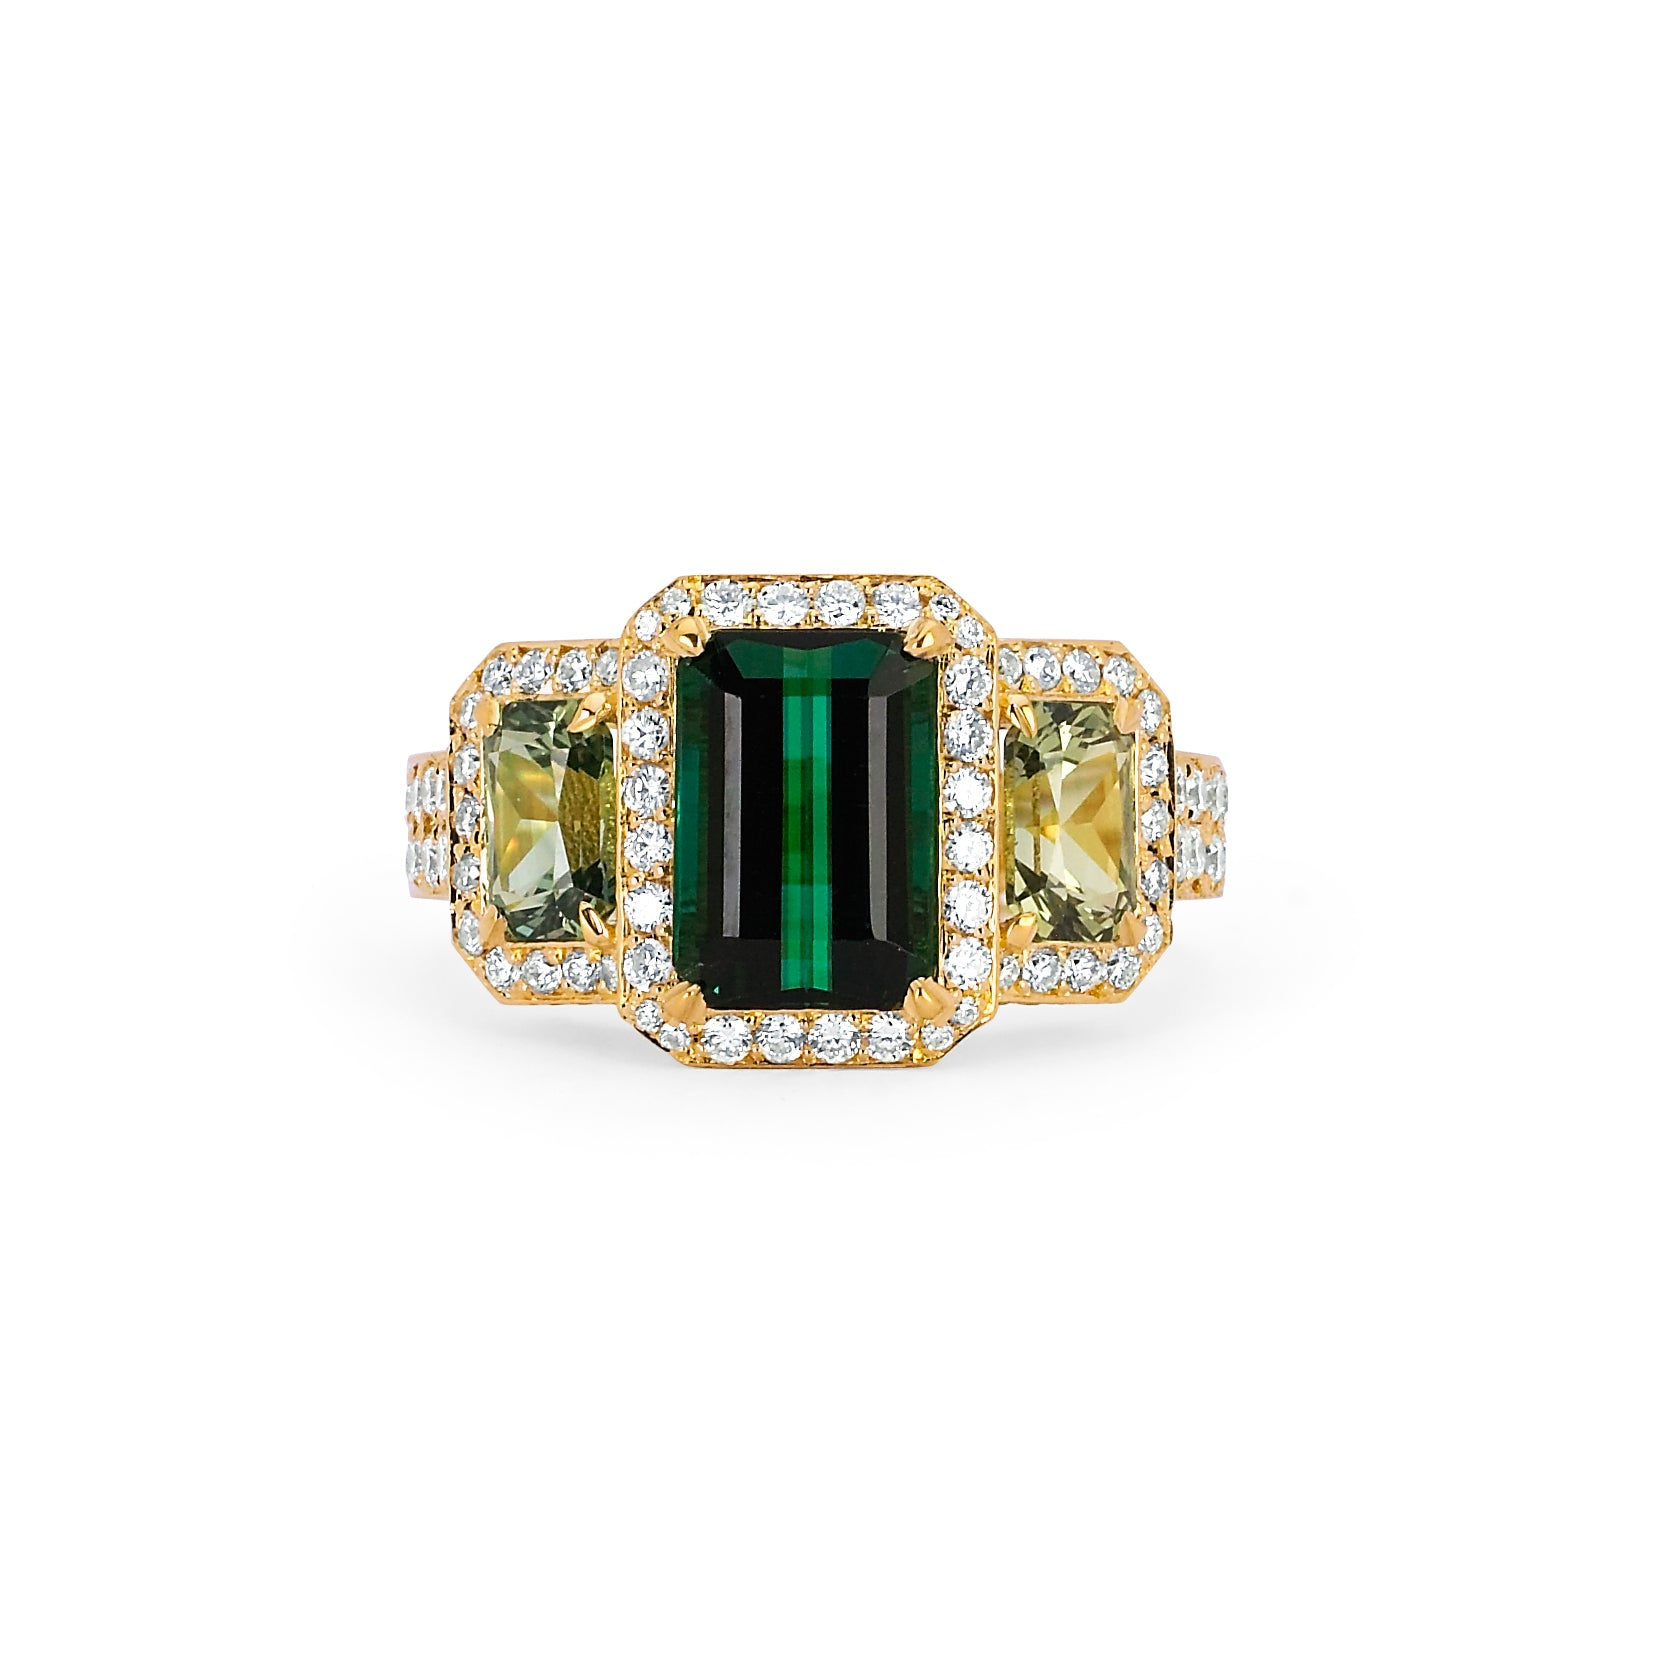 Green Tourmaline, Green Sapphire, and Diamond Ring